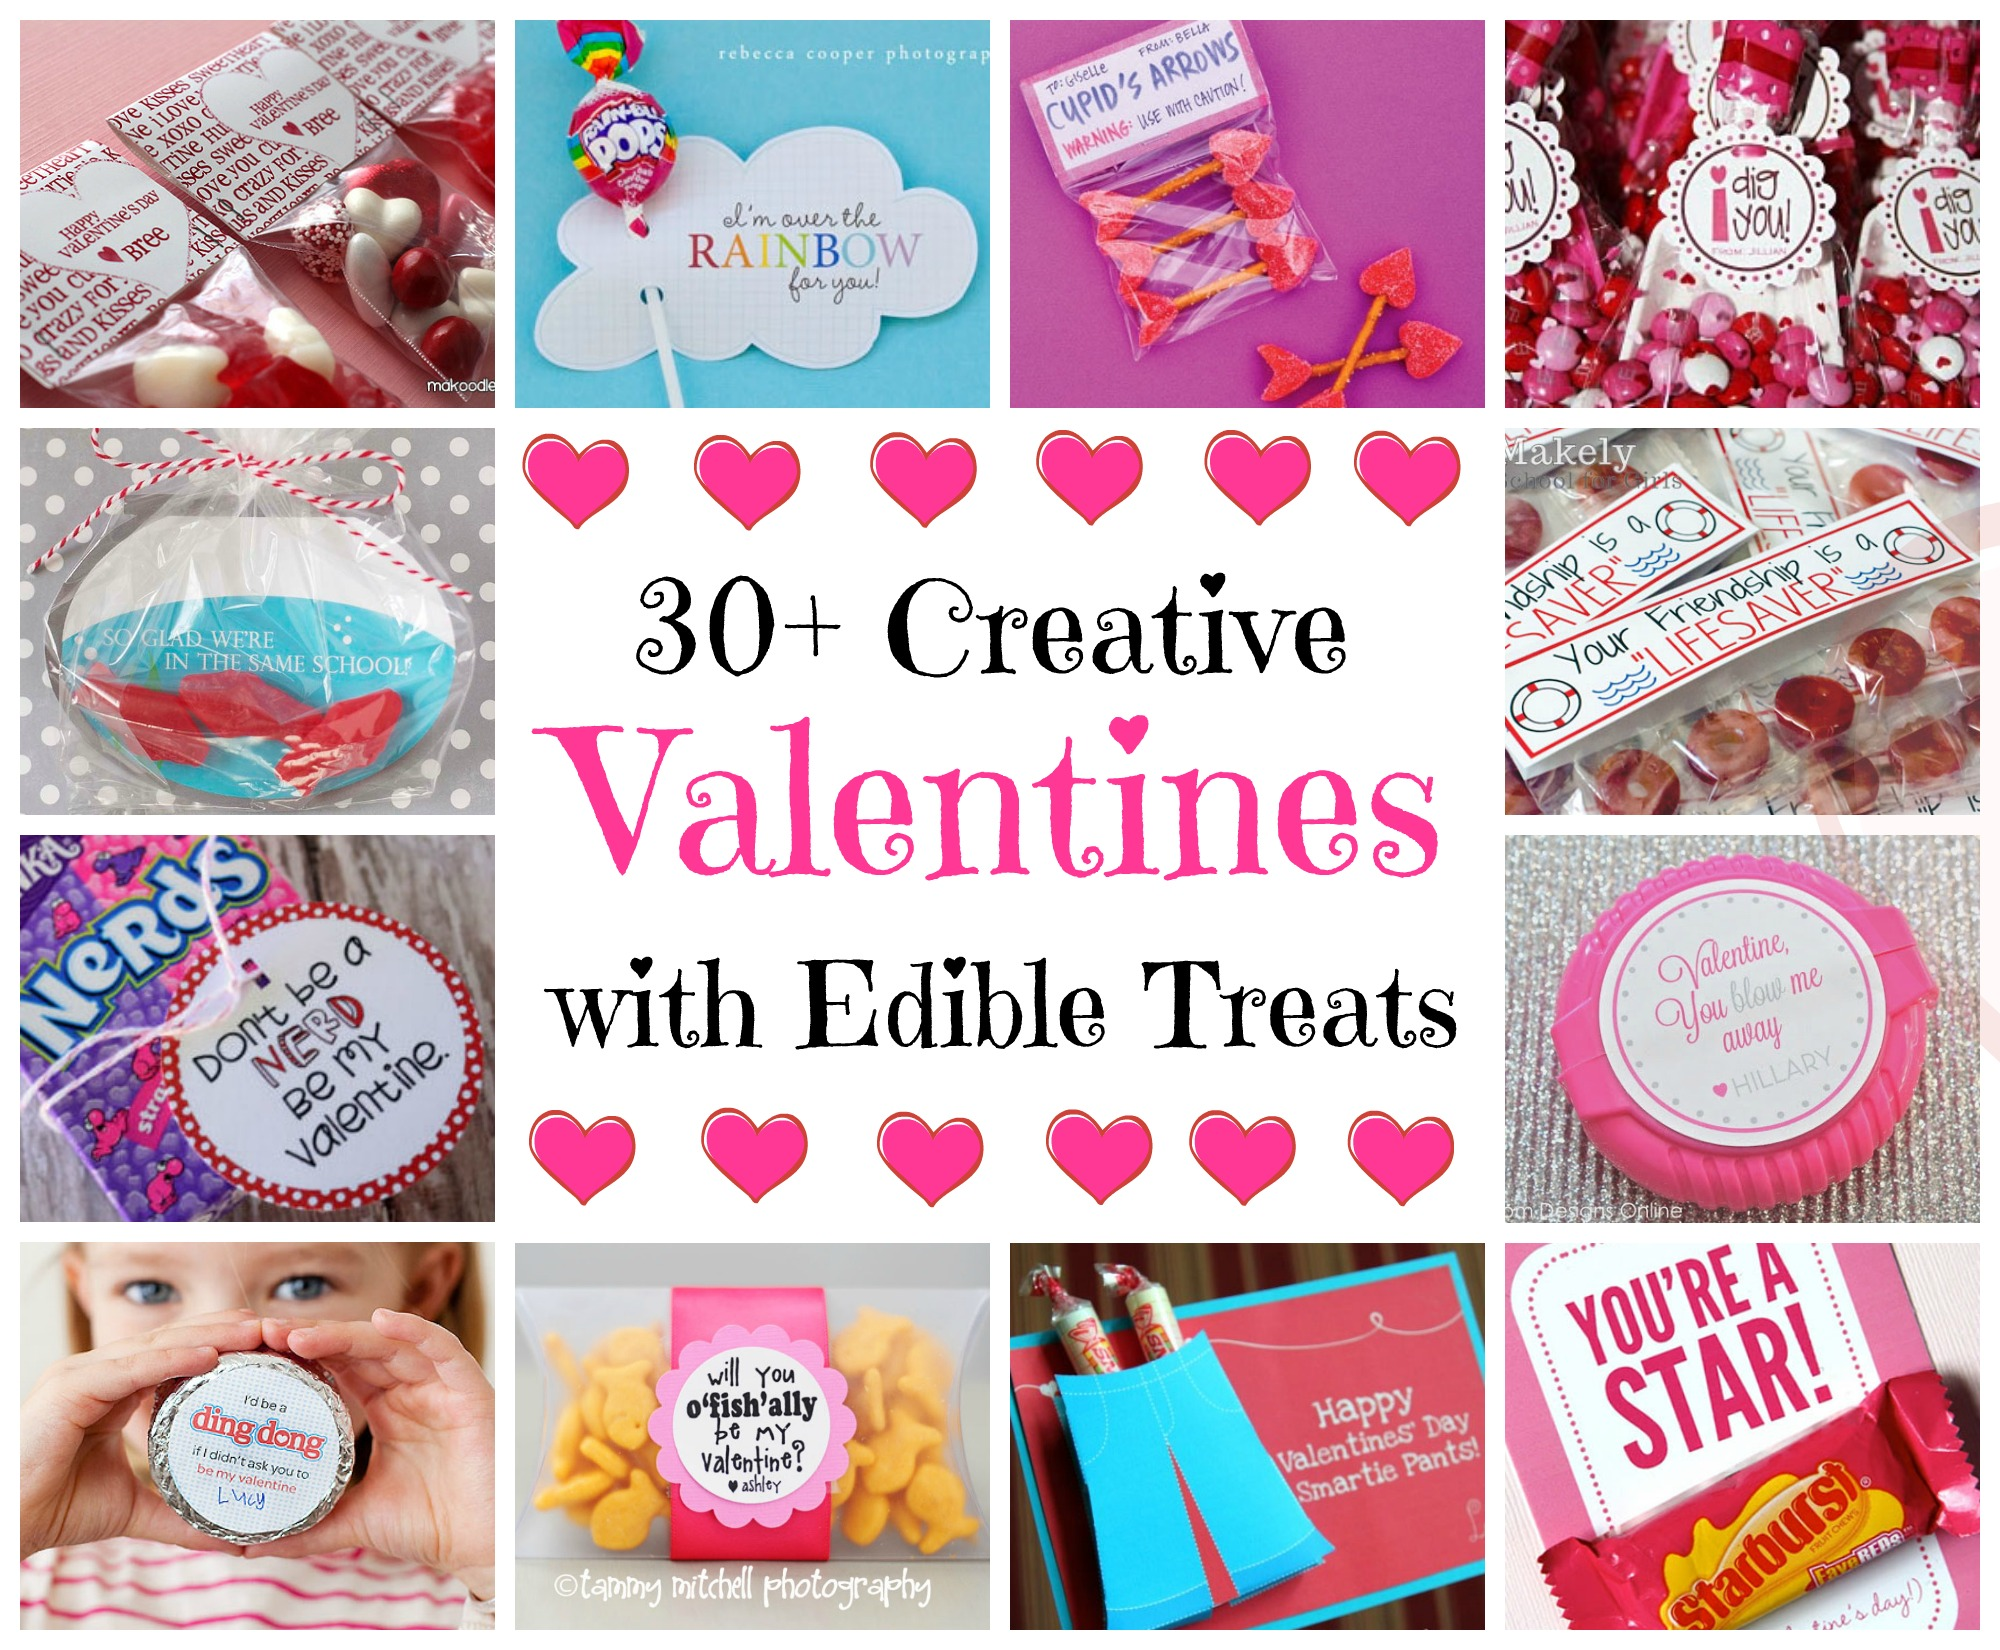 valentines with edible treats celebrating holidays - Homemade Valentine Treats